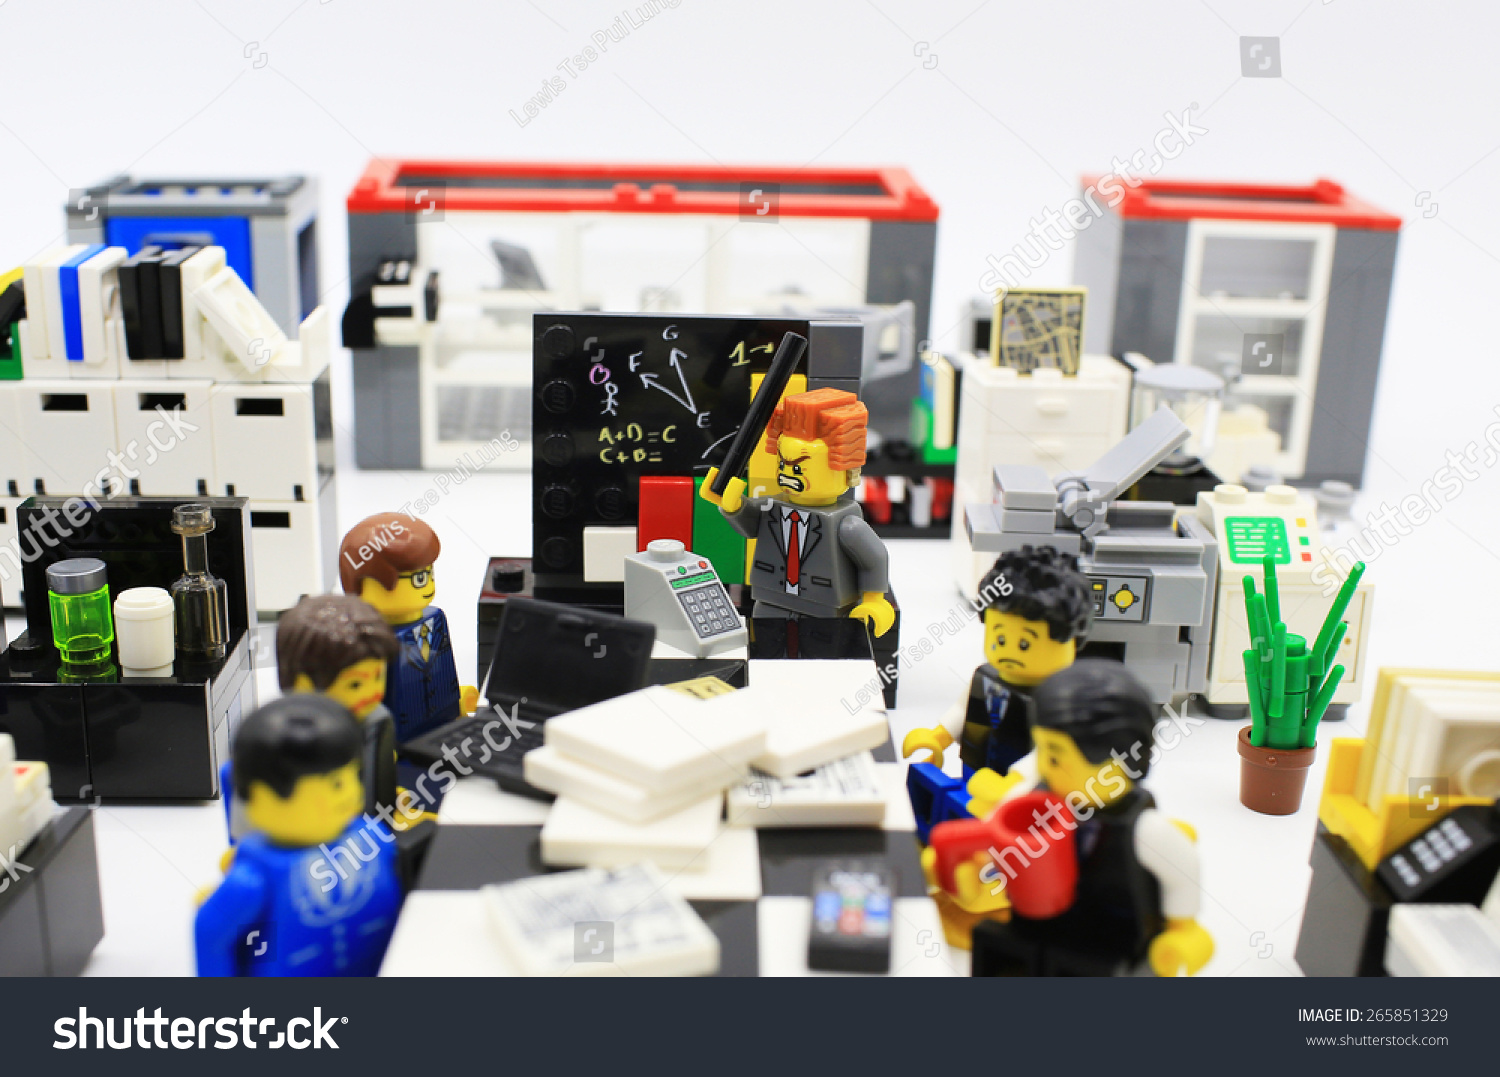 HONG KONG,MARCH 22: Studio Shot Of Lego People In Office, Combine From